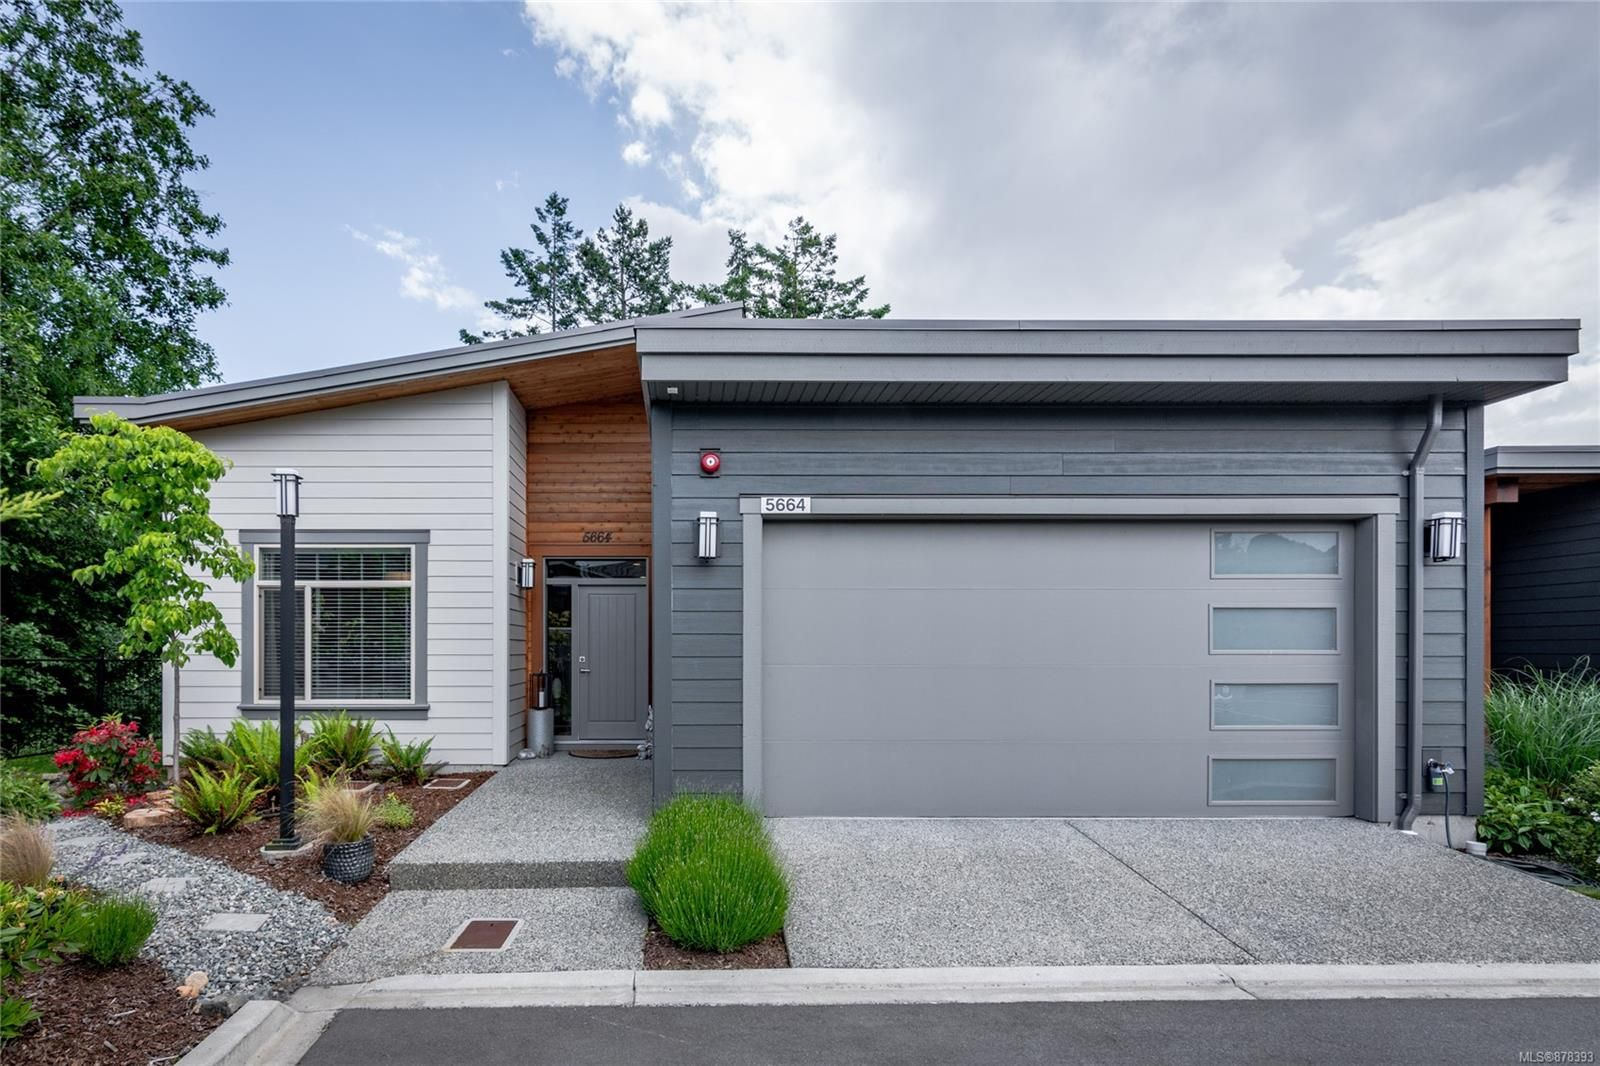 Main Photo: 5664 Linley Valley Dr in : Na North Nanaimo Row/Townhouse for sale (Nanaimo)  : MLS®# 878393